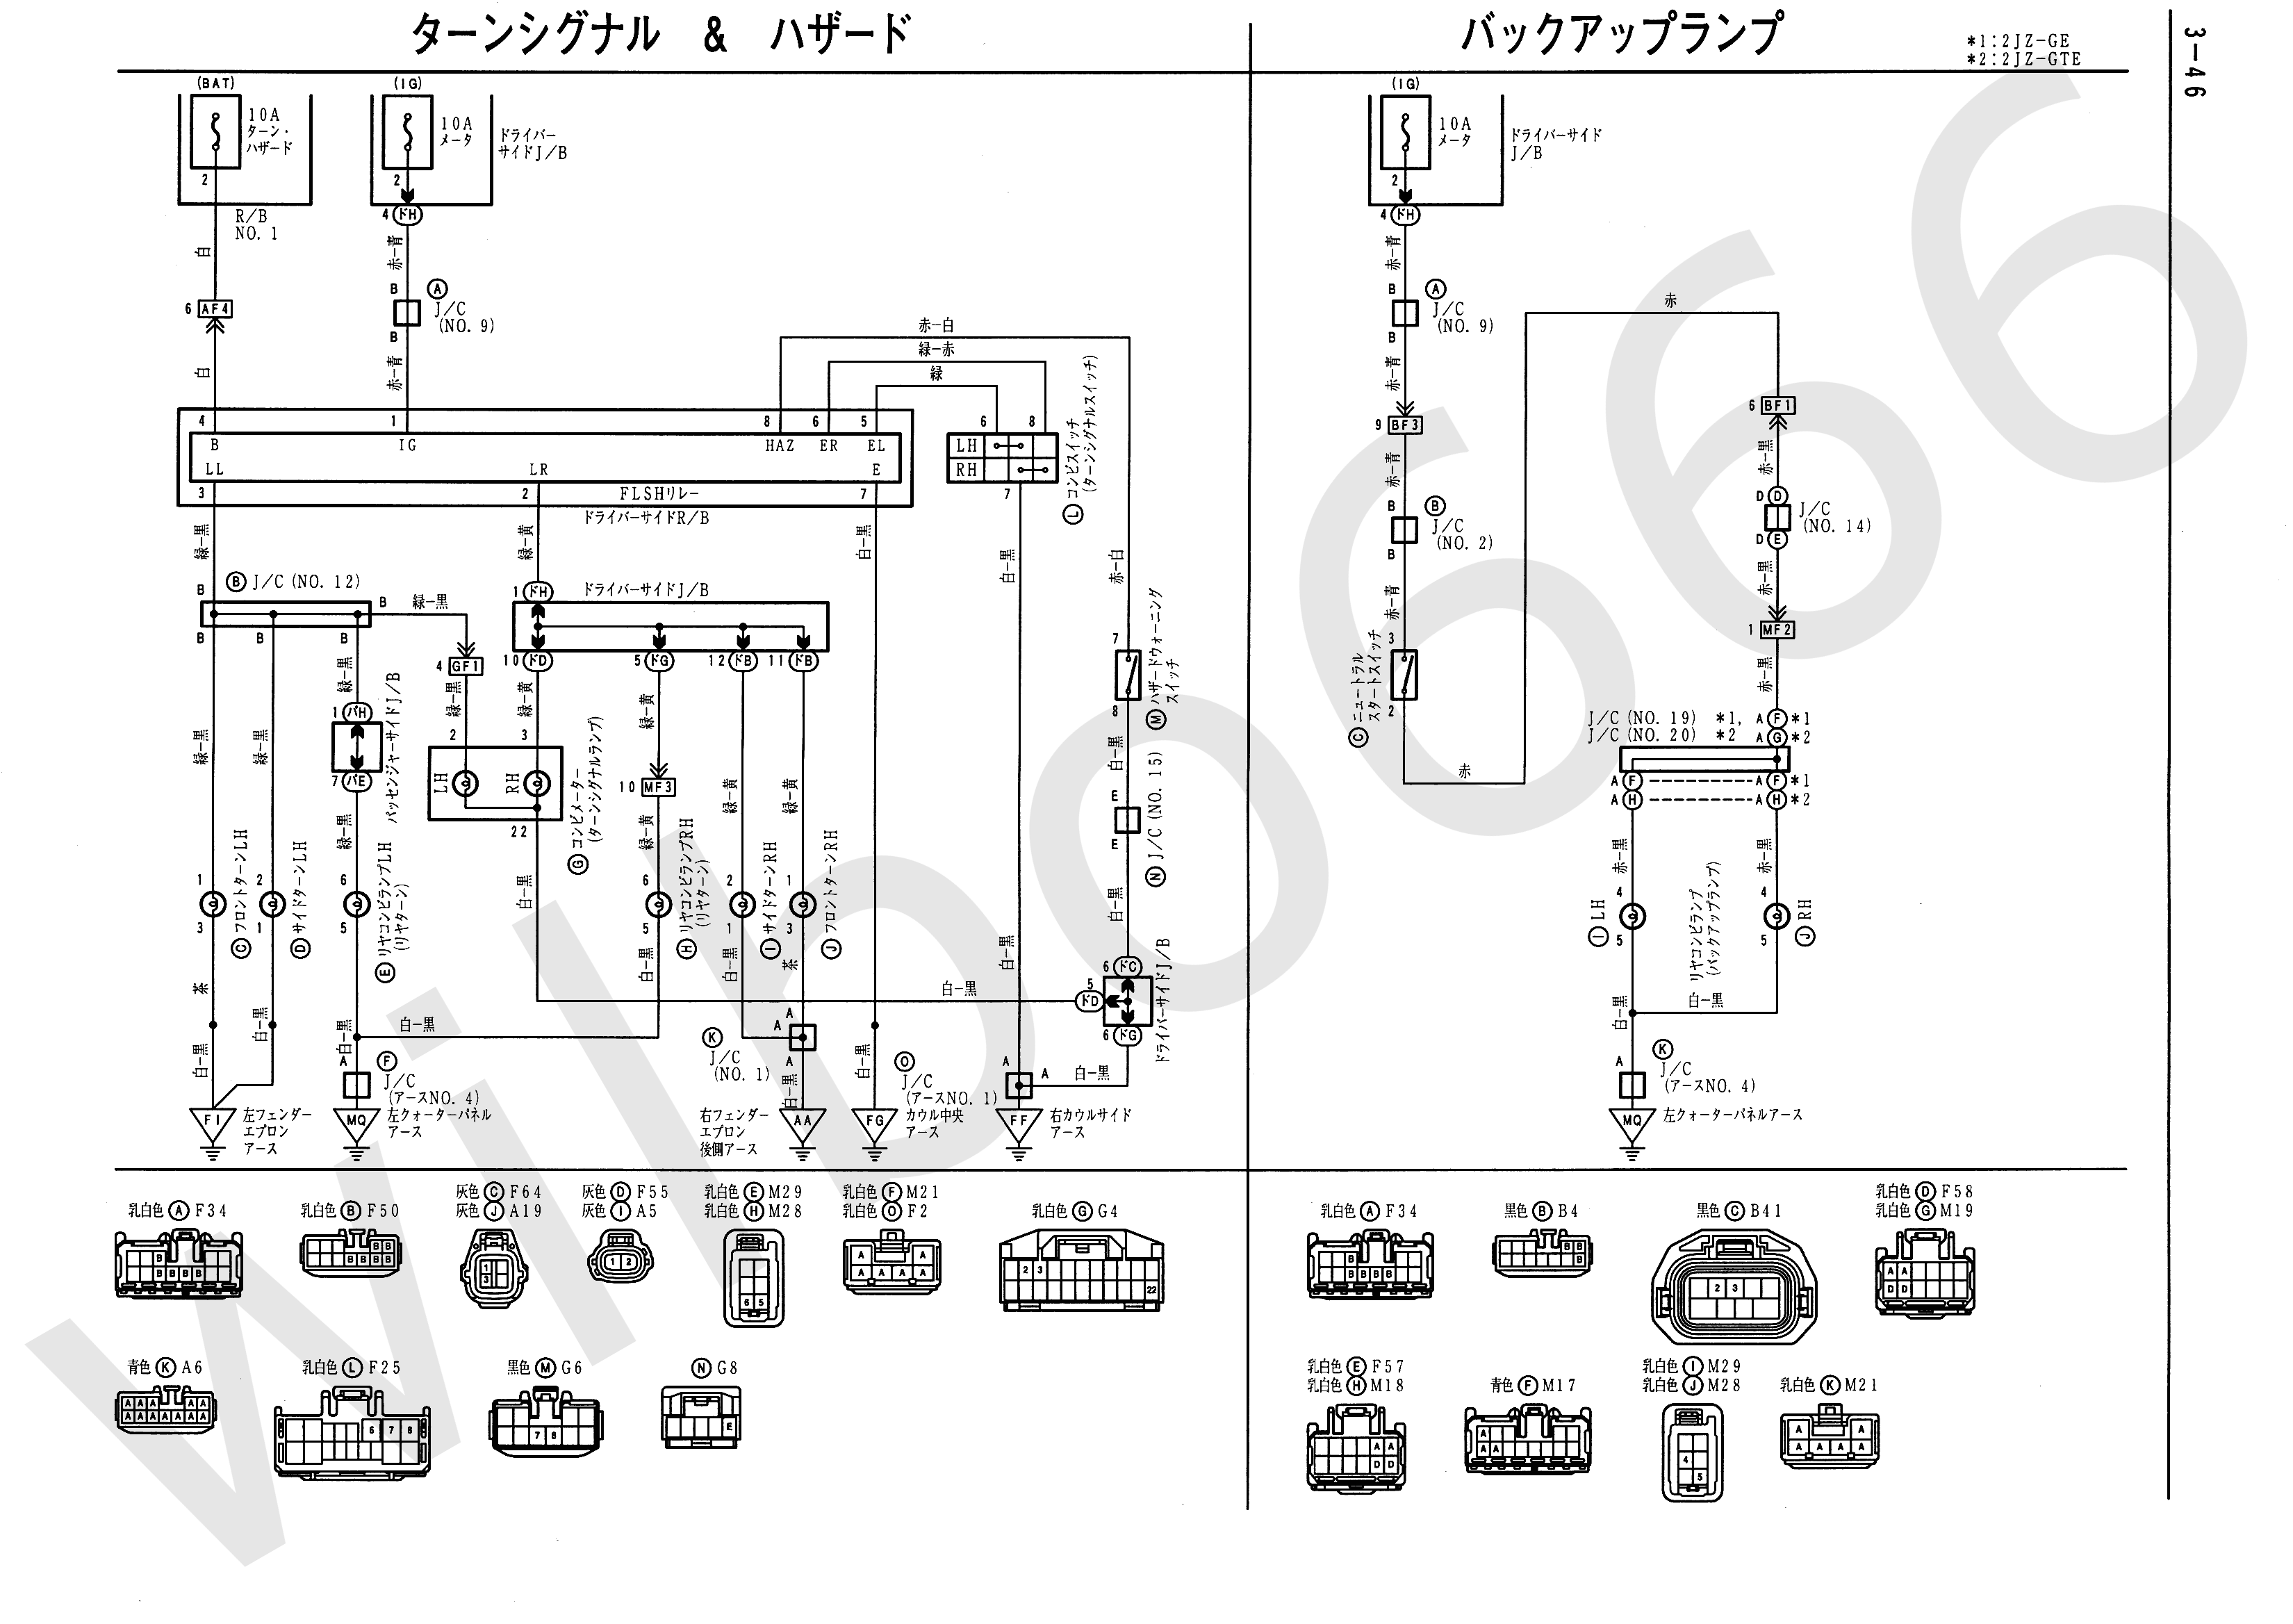 JZS161 Electrical Wiring Diagram 6748505 3 46 wilbo666 2jz gte vvti jzs161 aristo engine wiring 2jzgte wiring diagram at mifinder.co